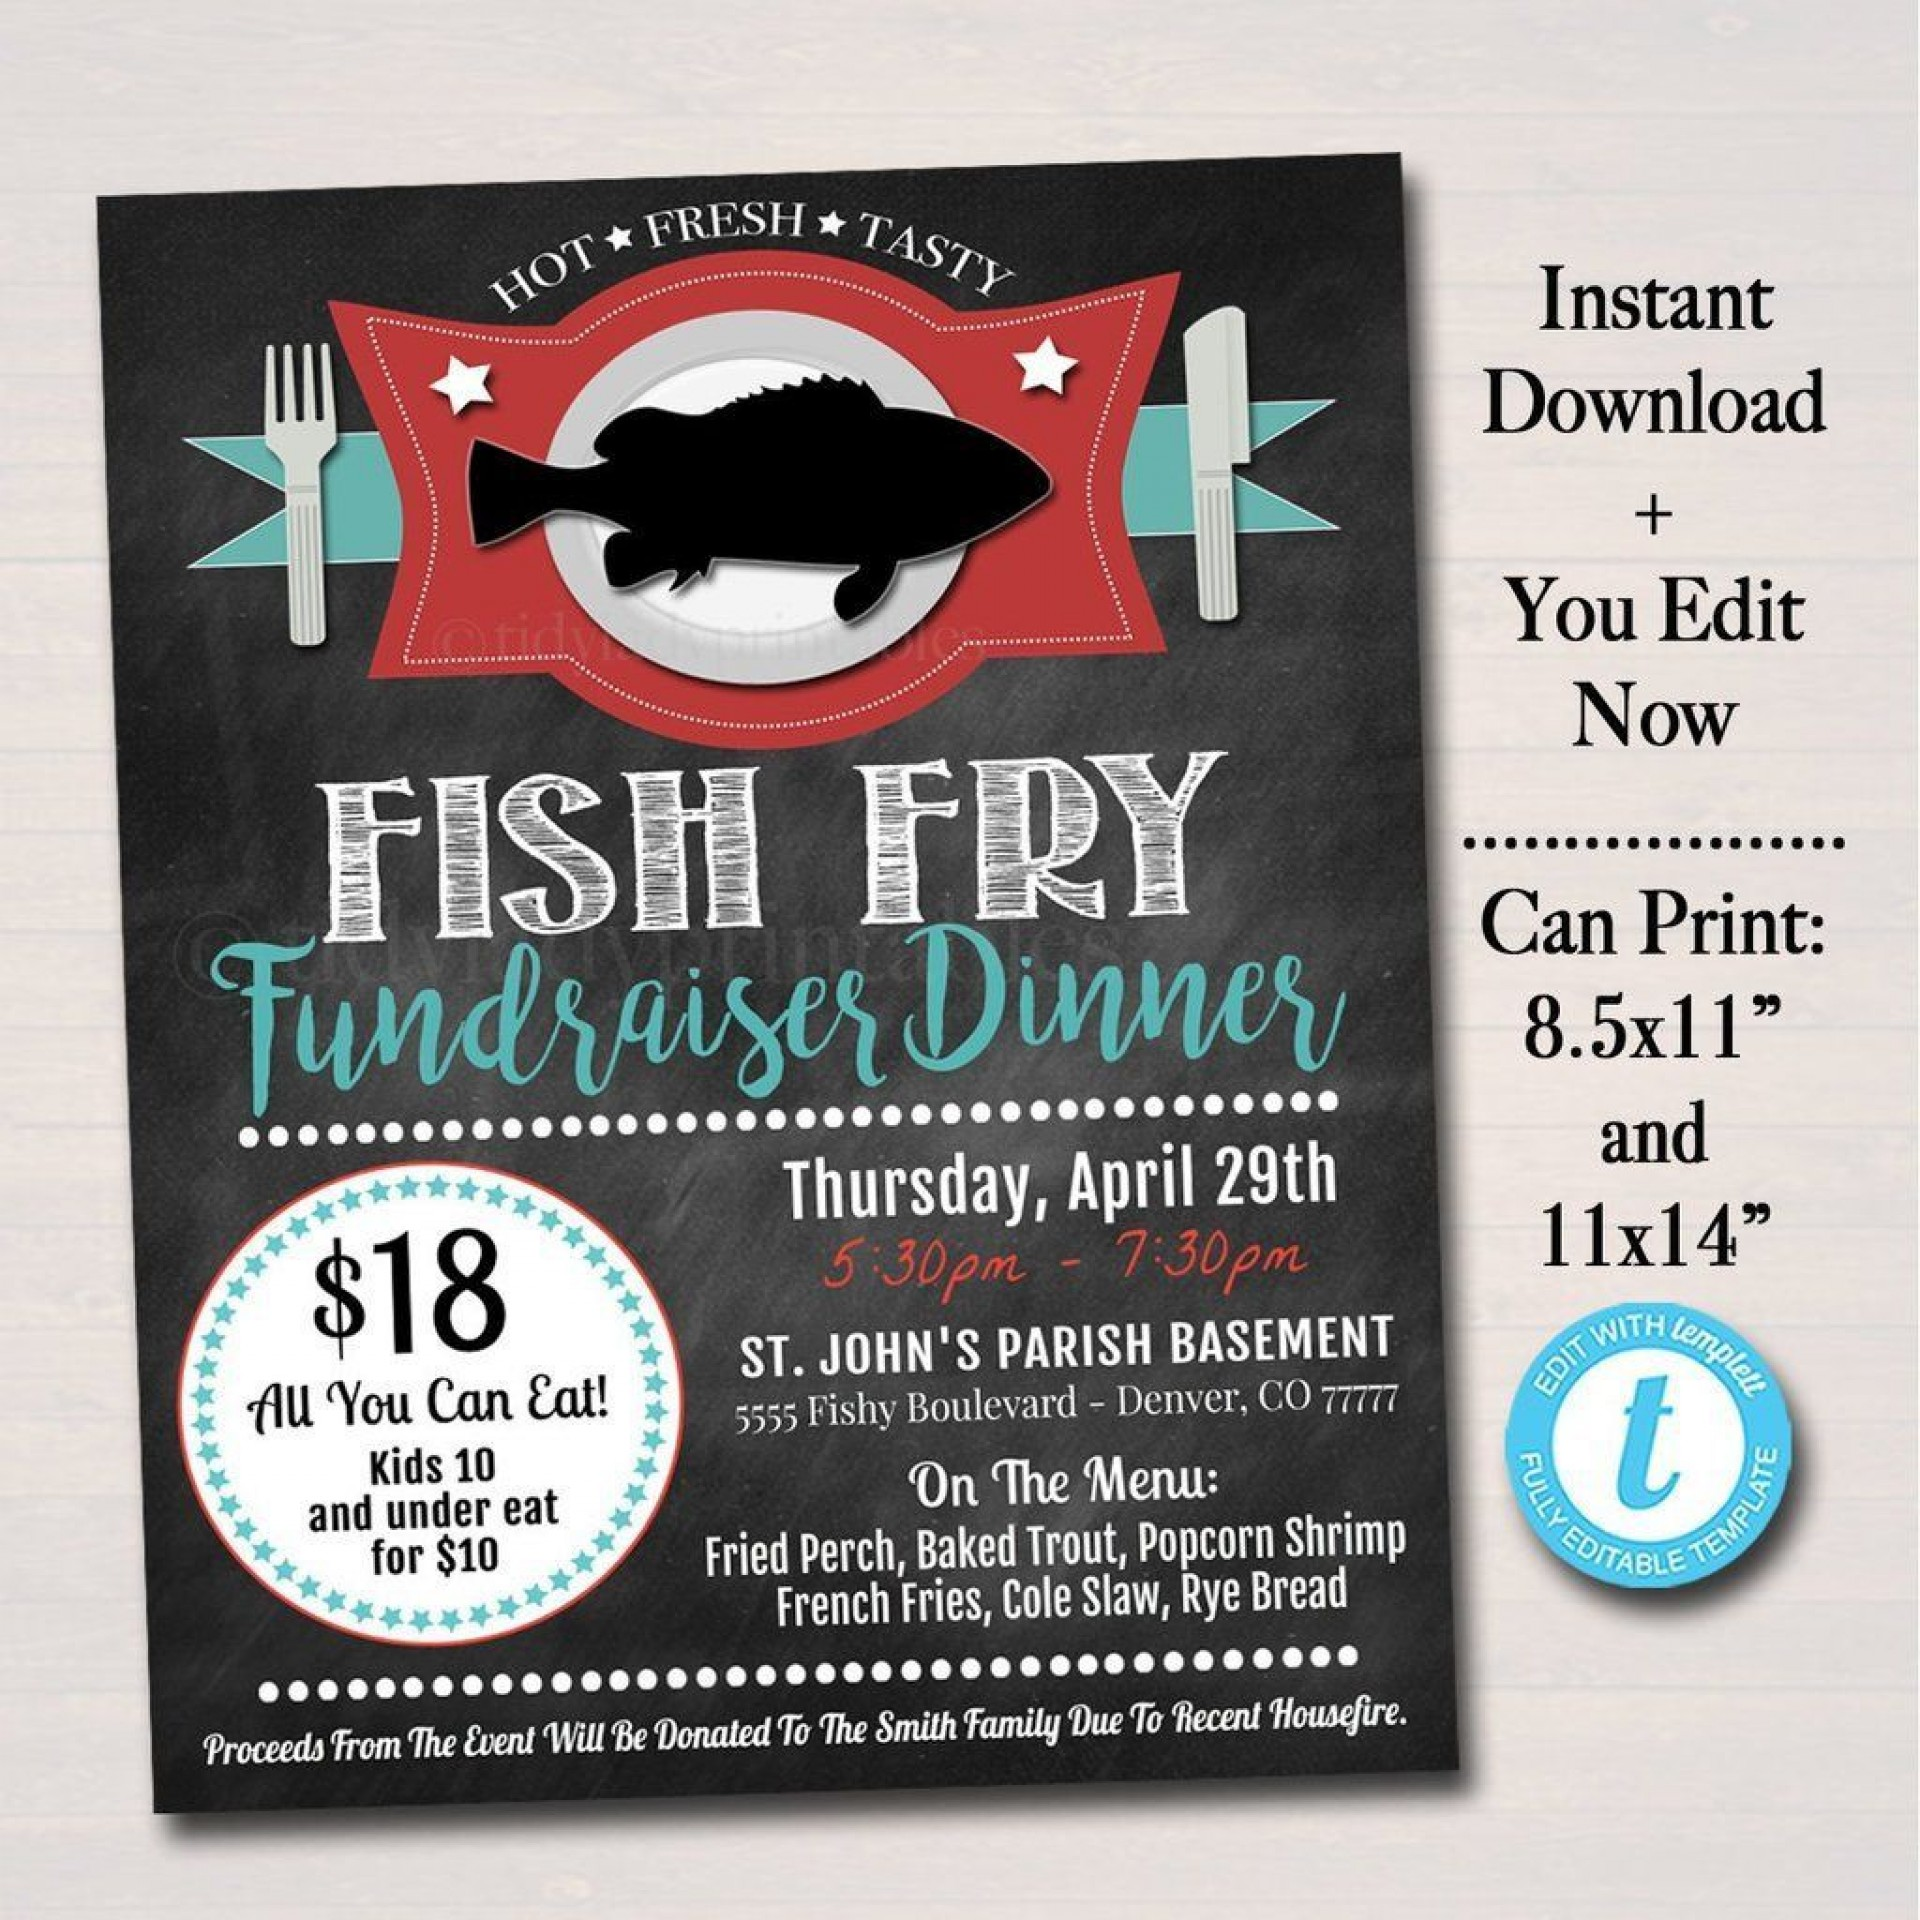 005 Formidable Fish Fry Flyer Template Inspiration  Printable Free Powerpoint Psd1920